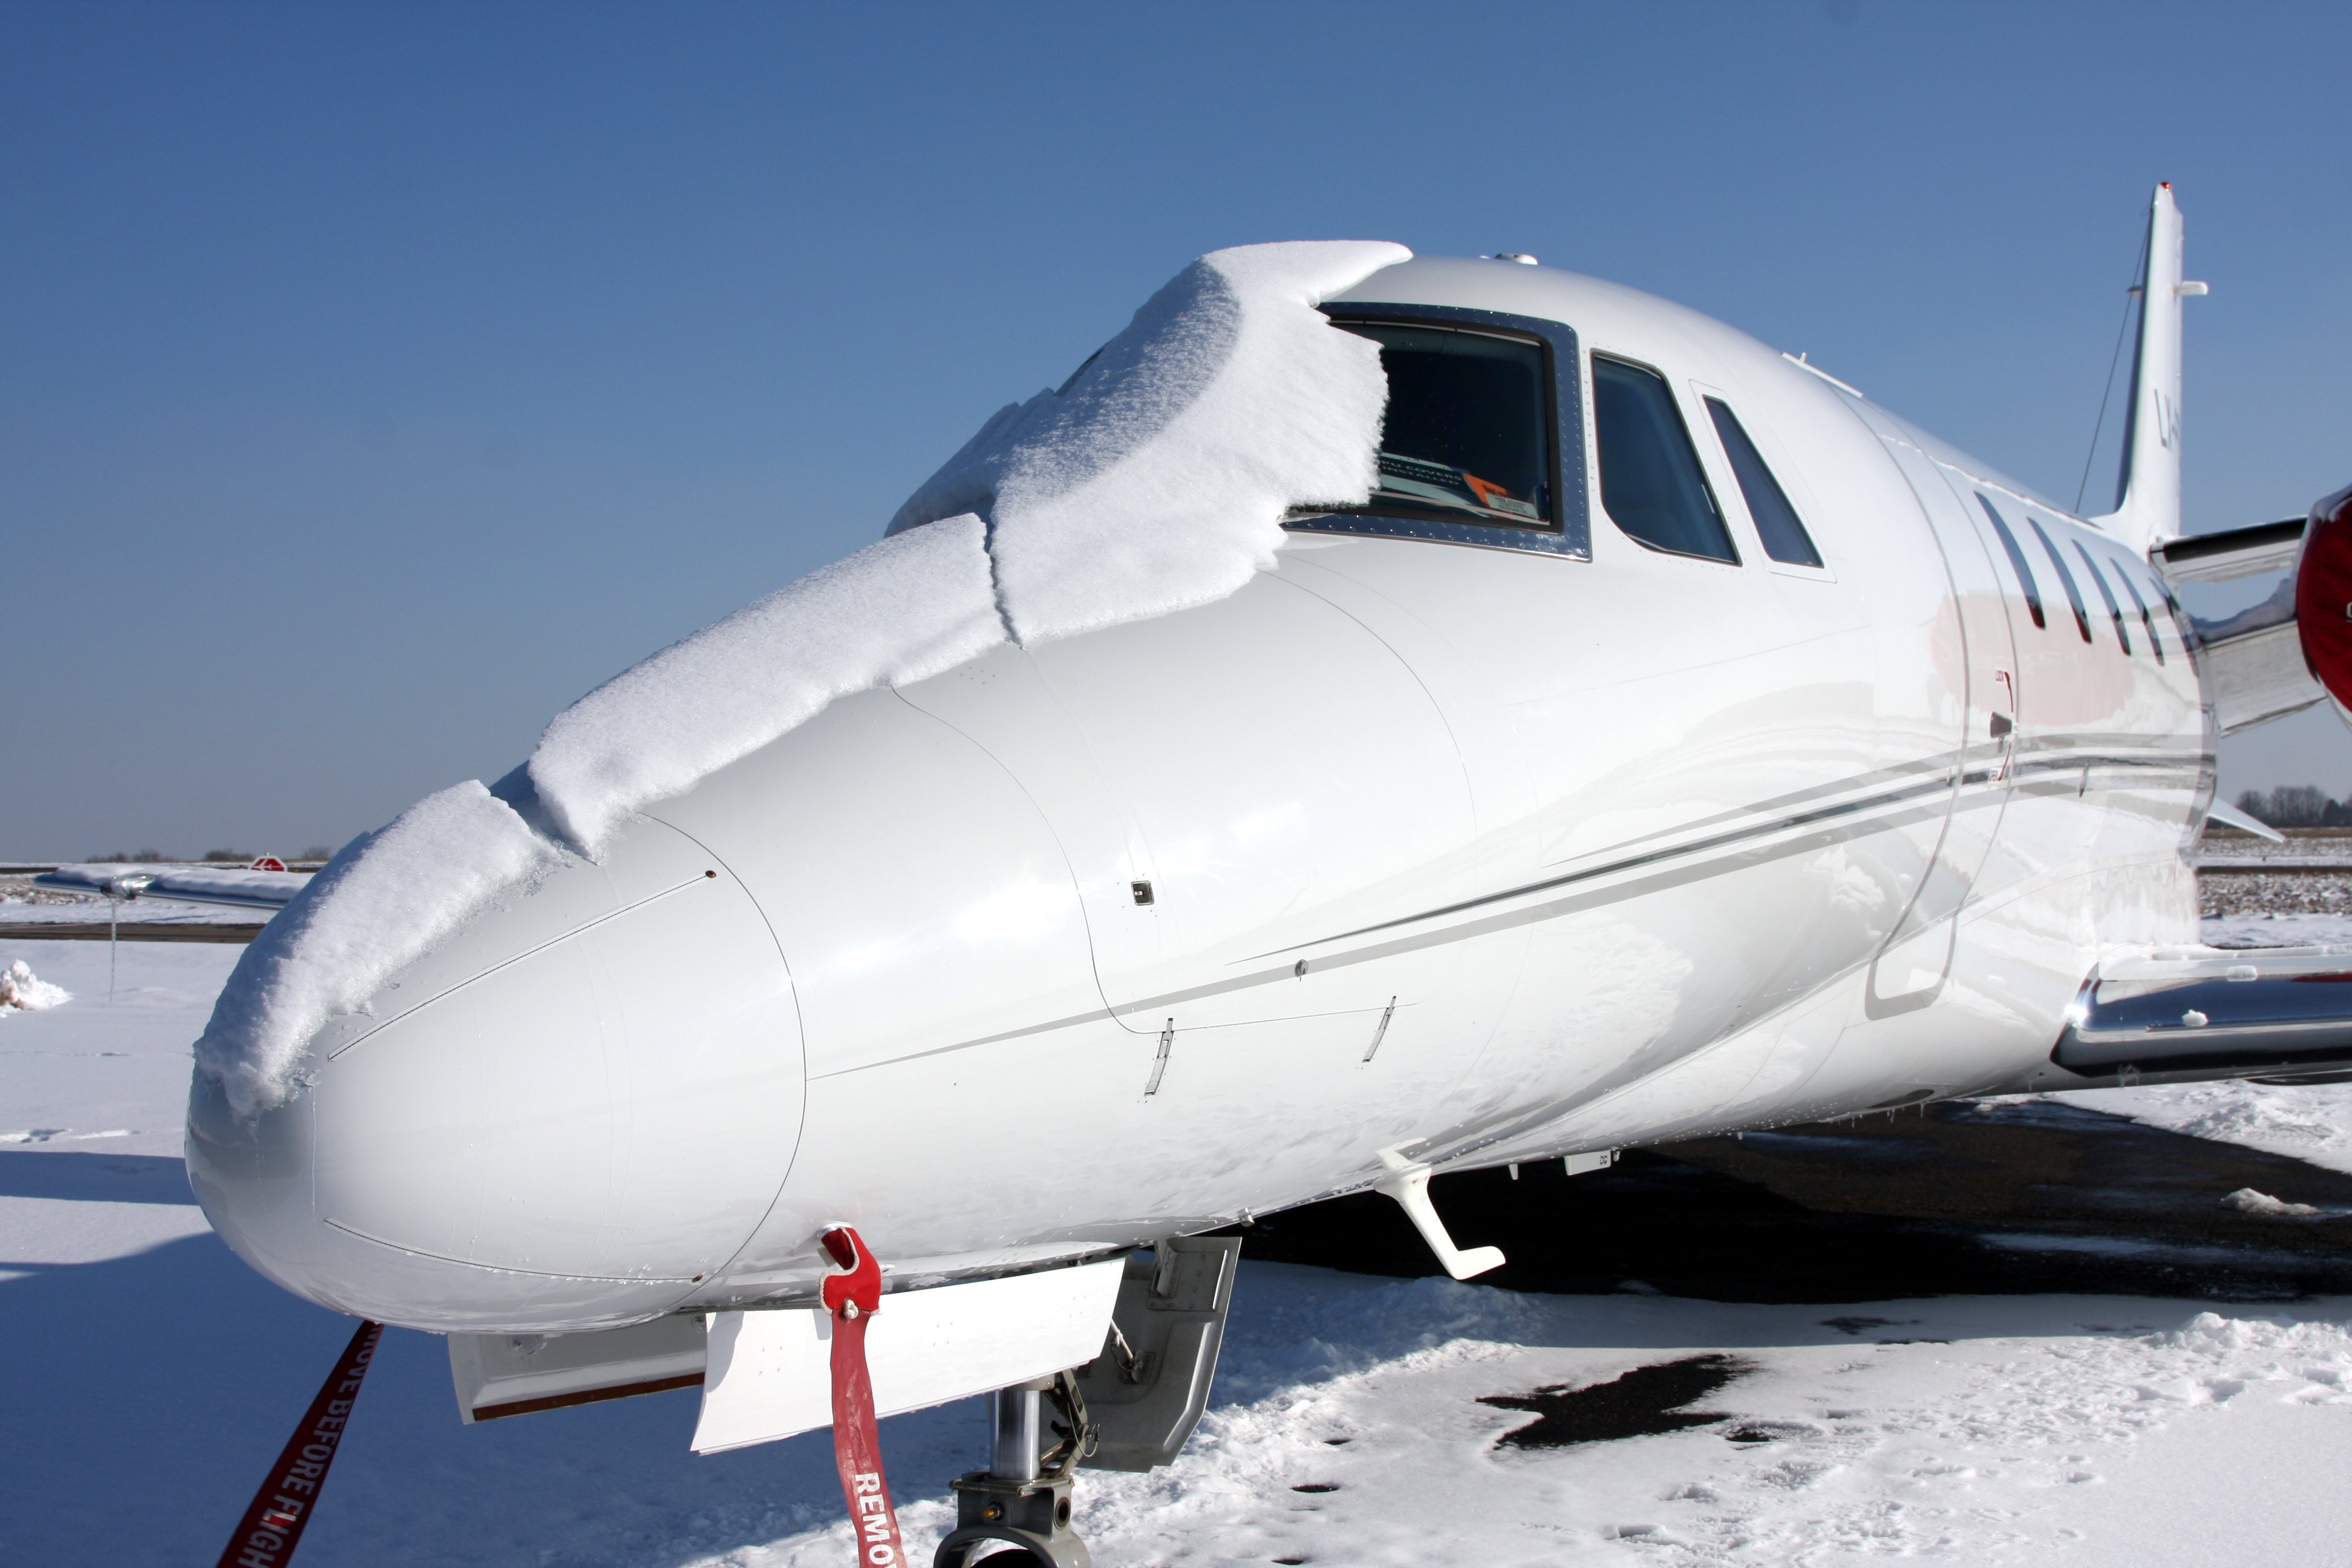 Online Hangar Anti-Icing Training Takes Off